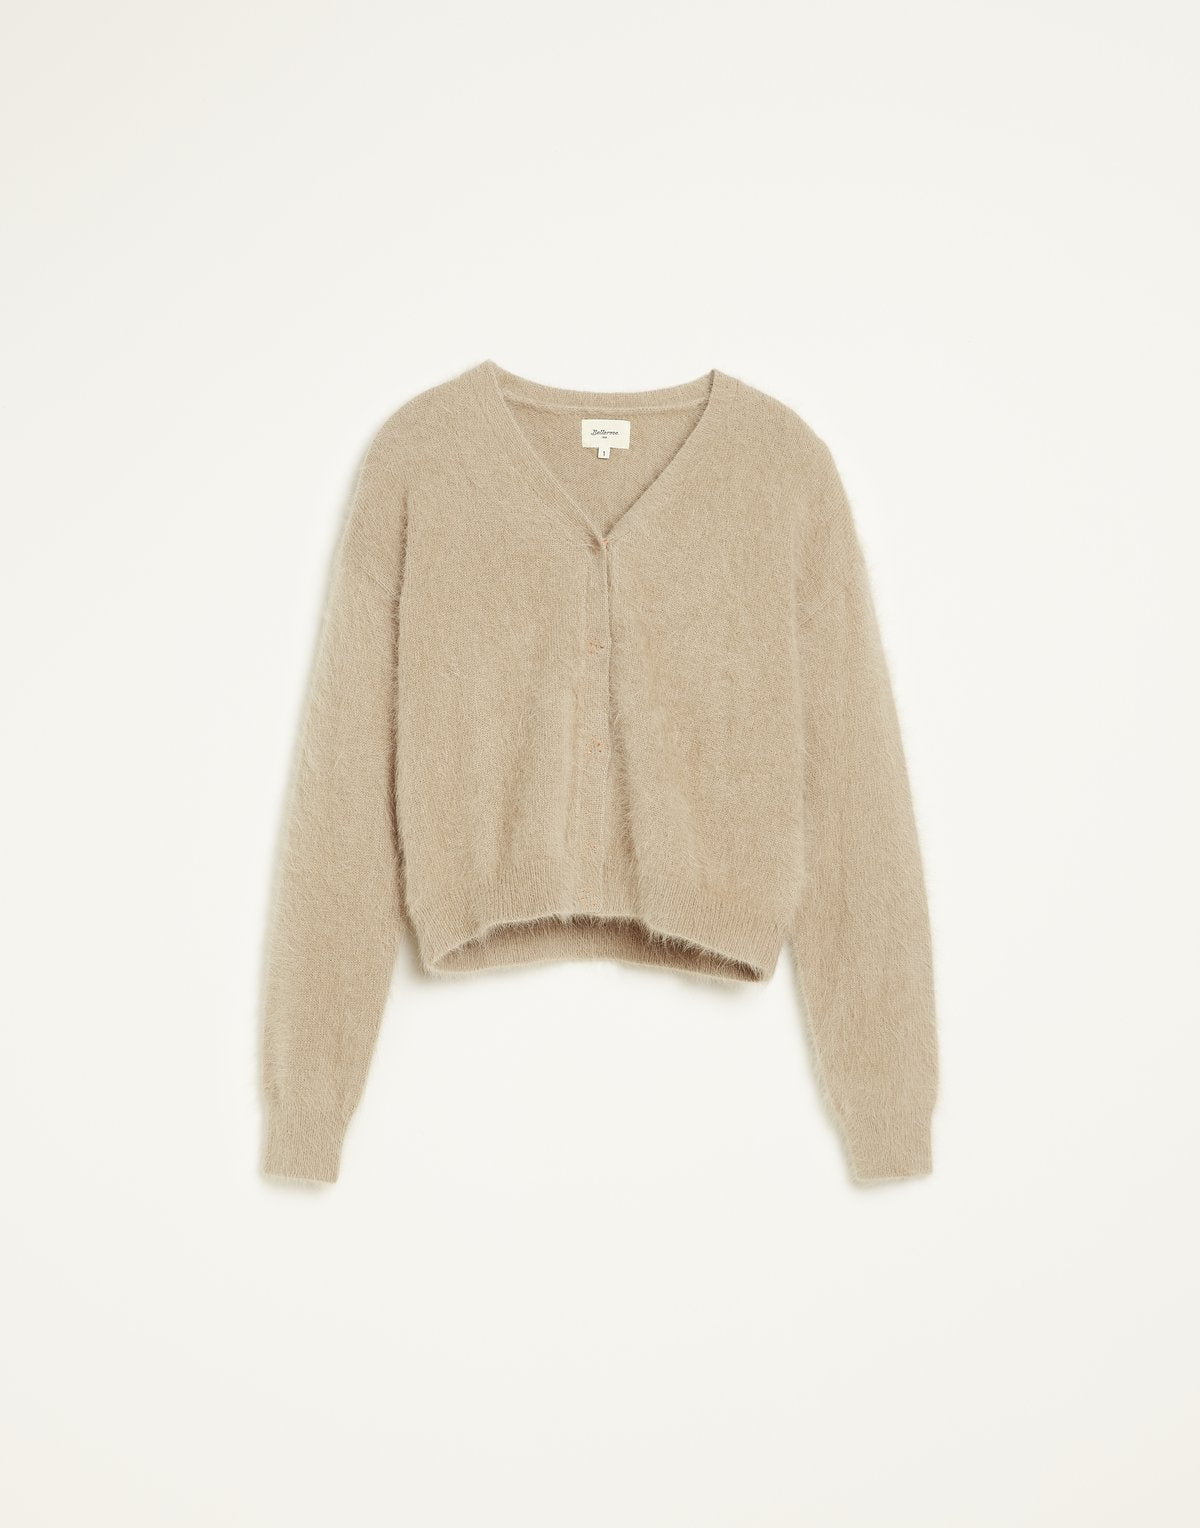 Bellerose V Neck Datam Cardigan REDUCED